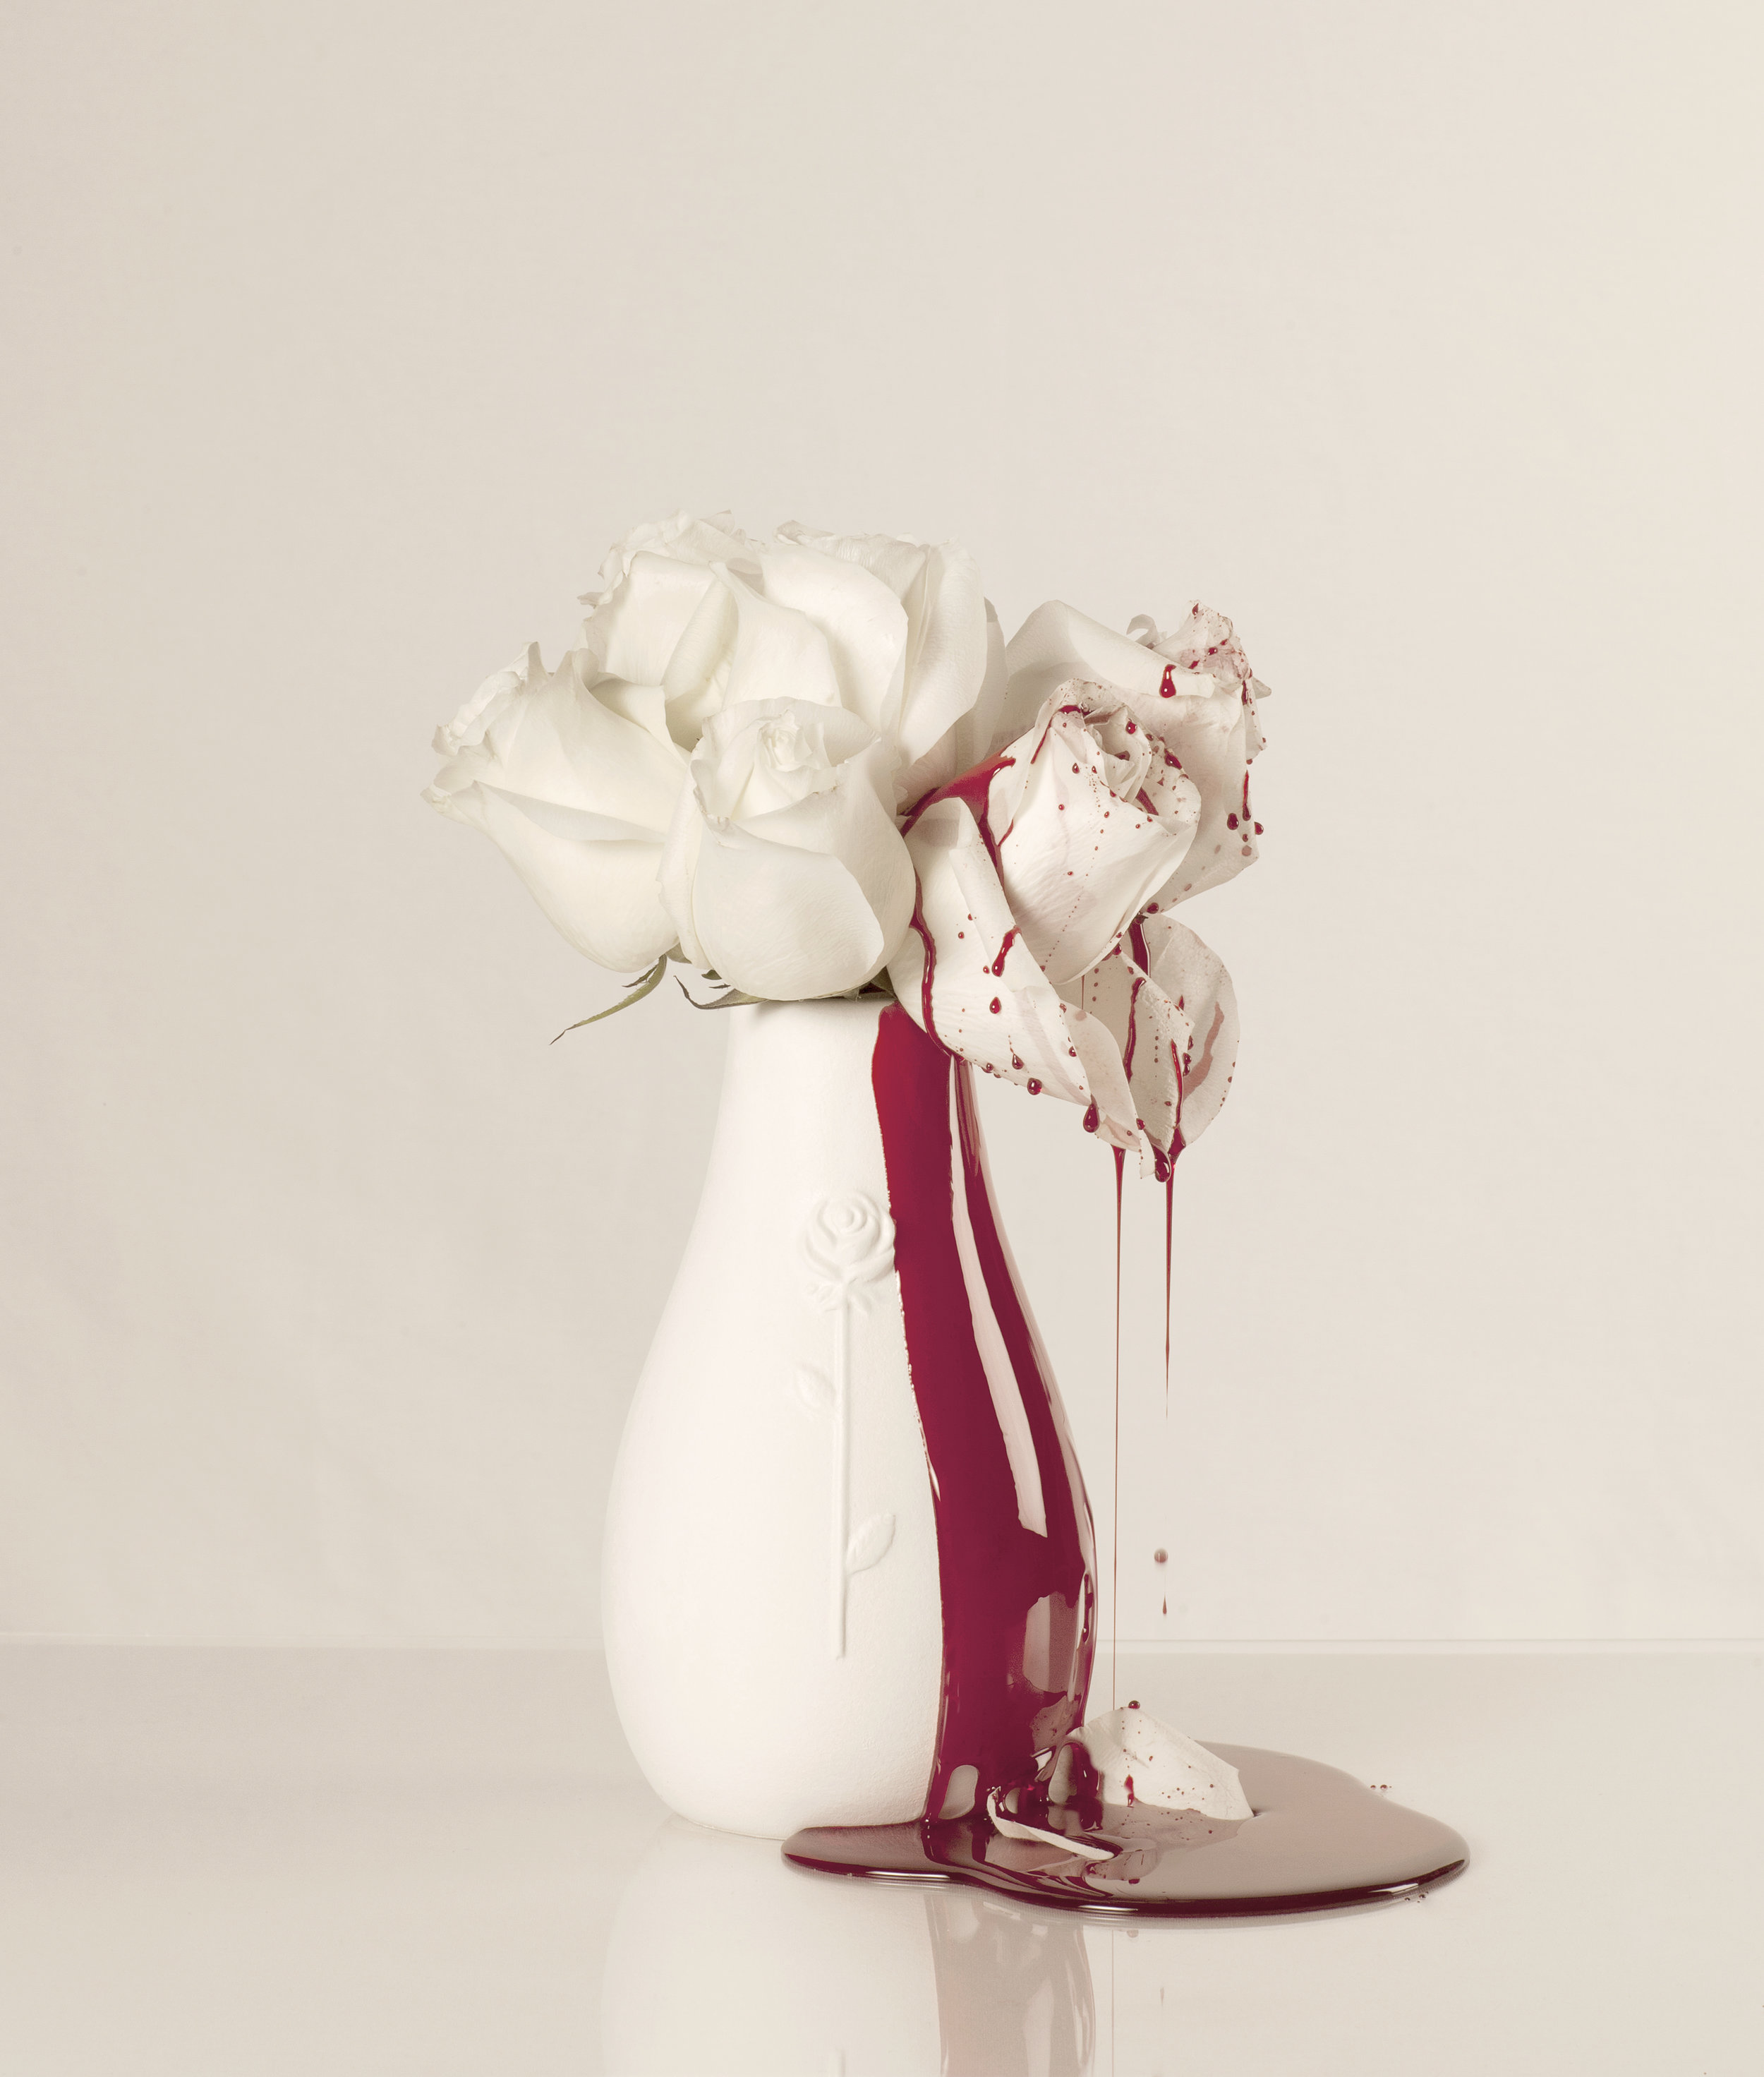 Blood & Roses (12) - colour photograph, edition of 5 + AP